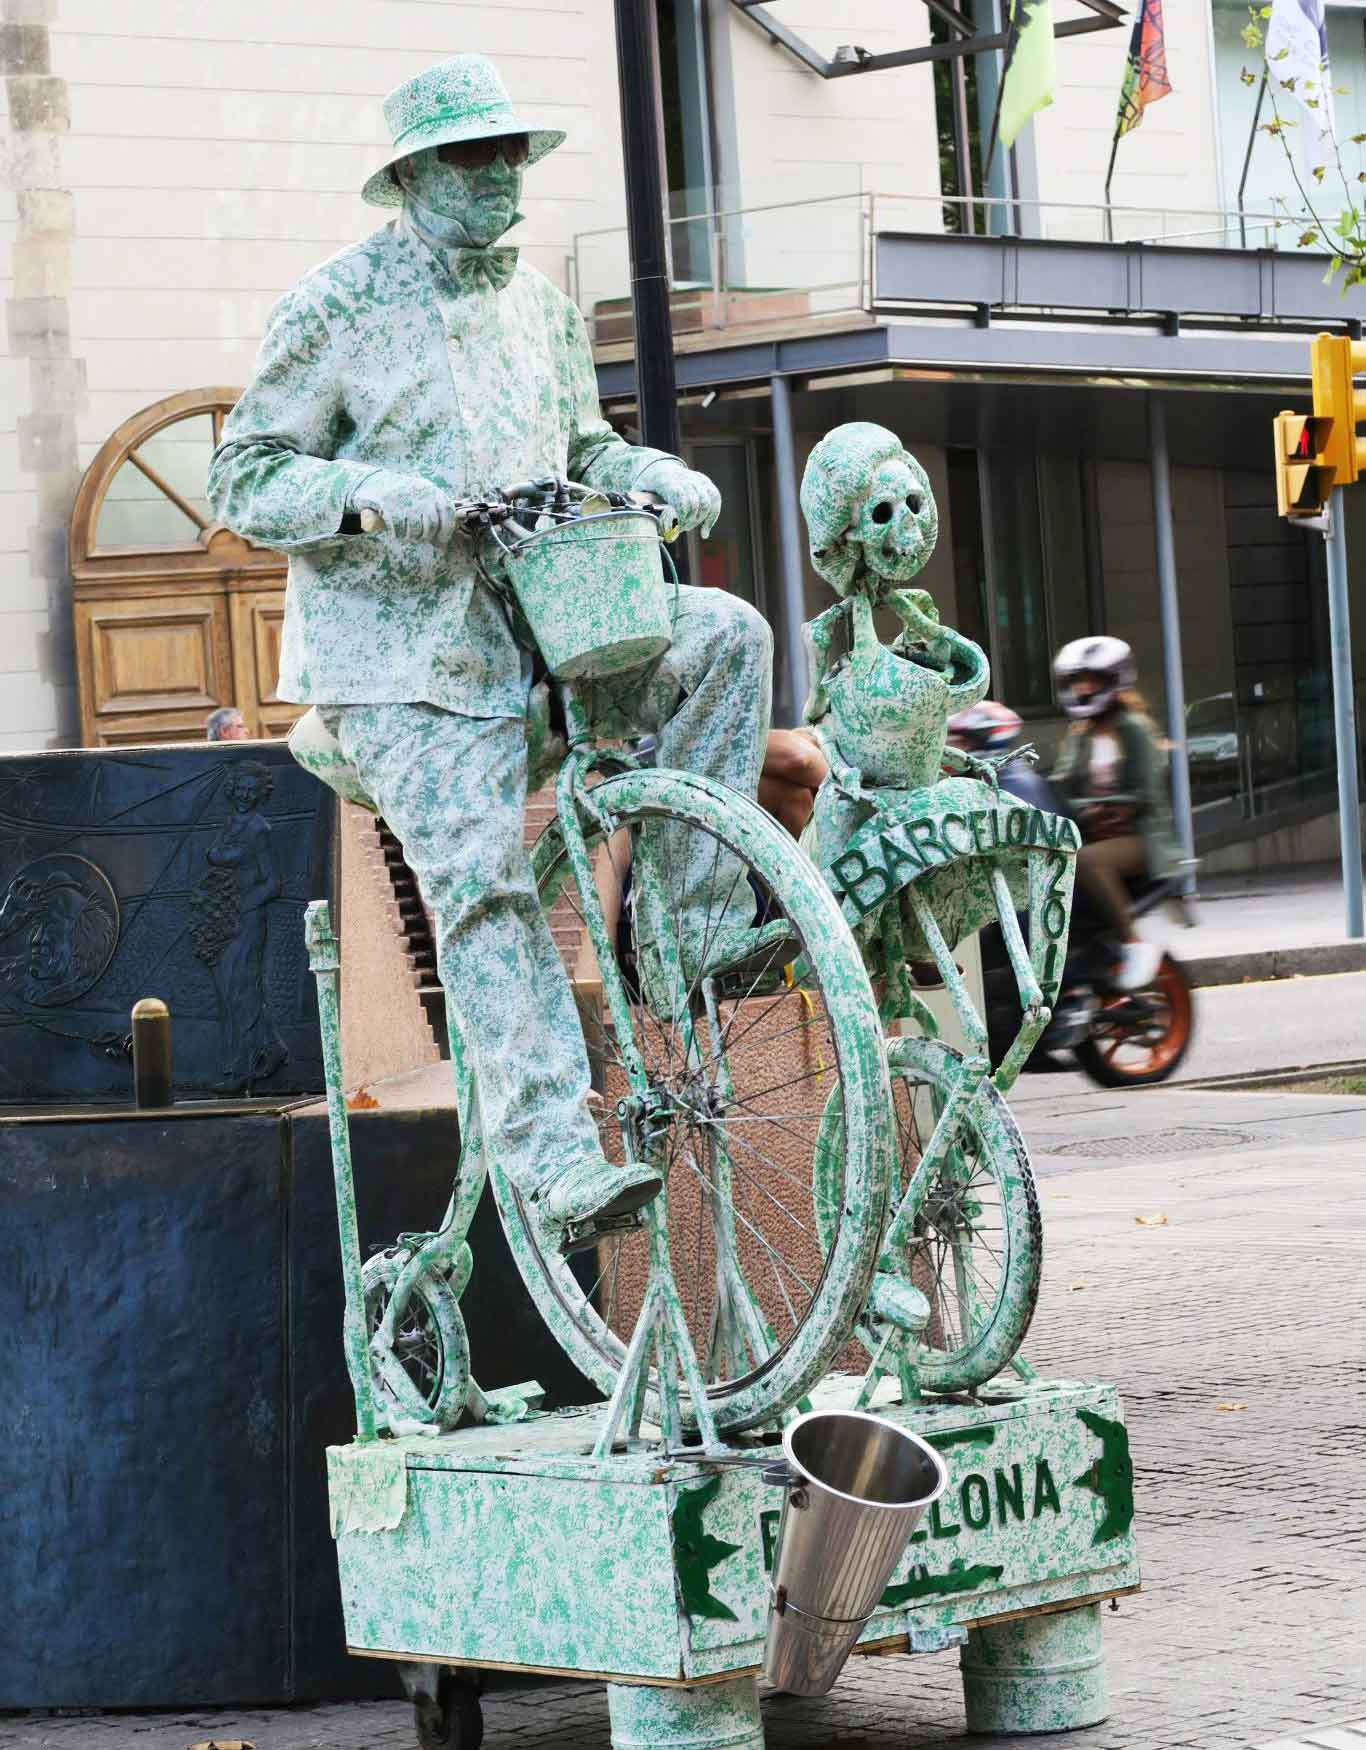 skeleton statue riding a bike in Las Ramblas, Barcelona, Spain